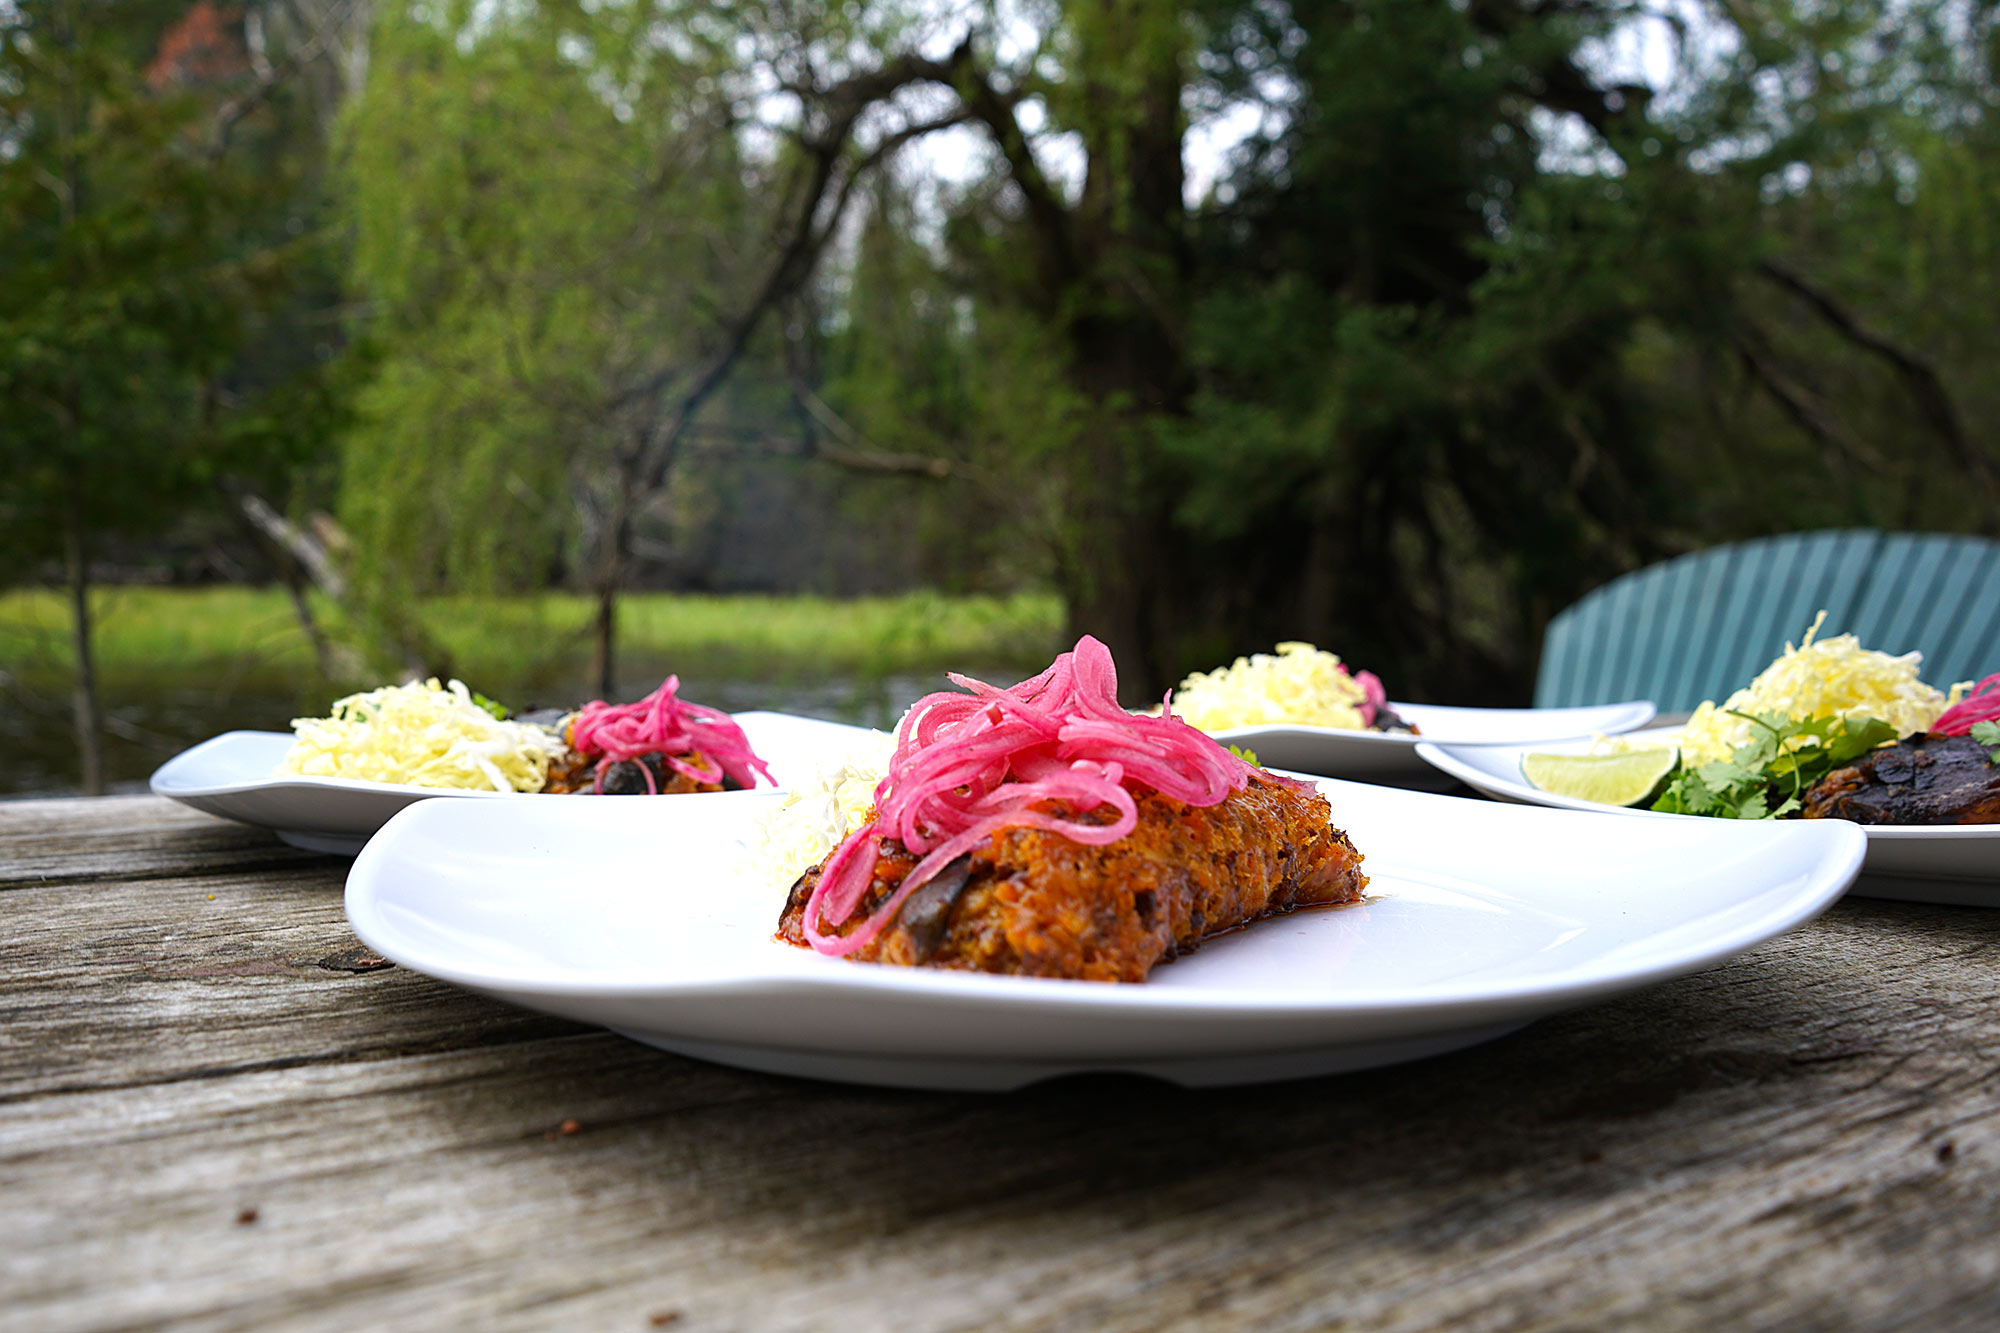 Chef Haley's Chili Rellenos with pickled onions | Au Sable